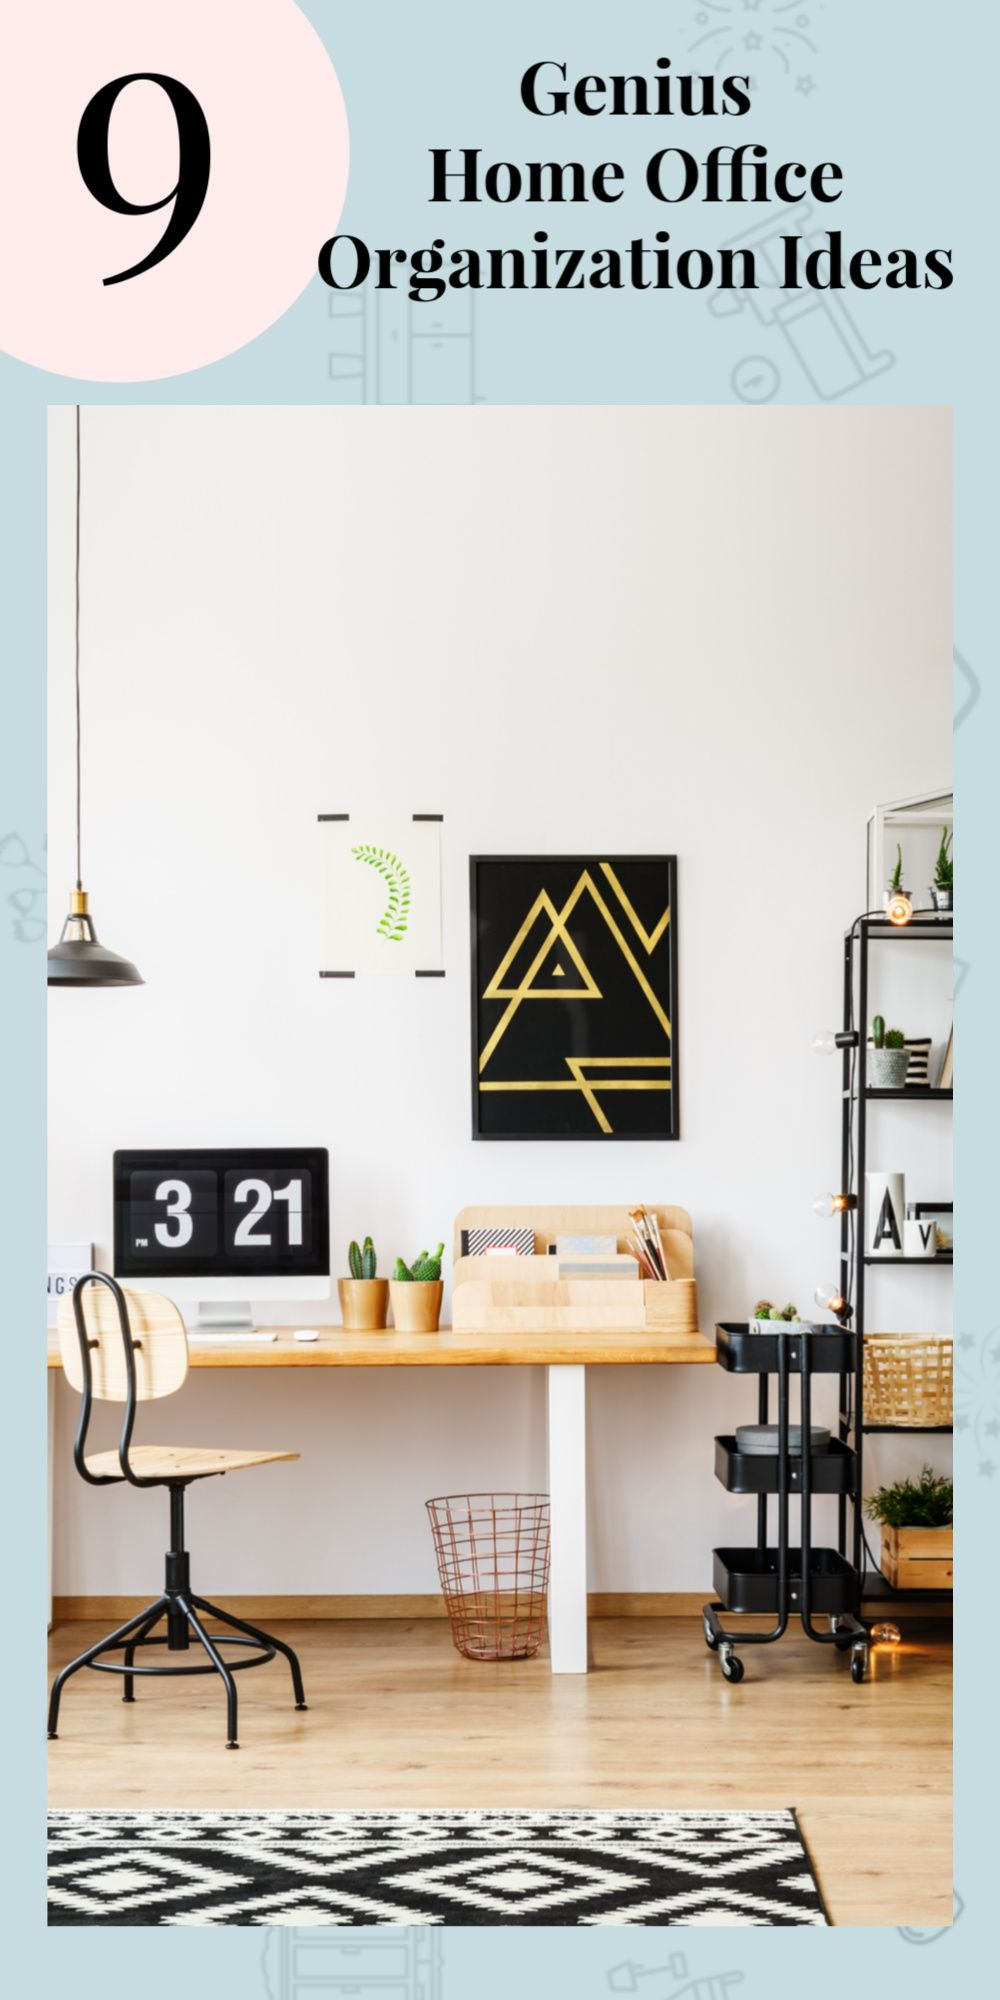 9 Home Office Organization Ideas So You Re Ultra Productive Home Office Organization Office Organization At Work Home